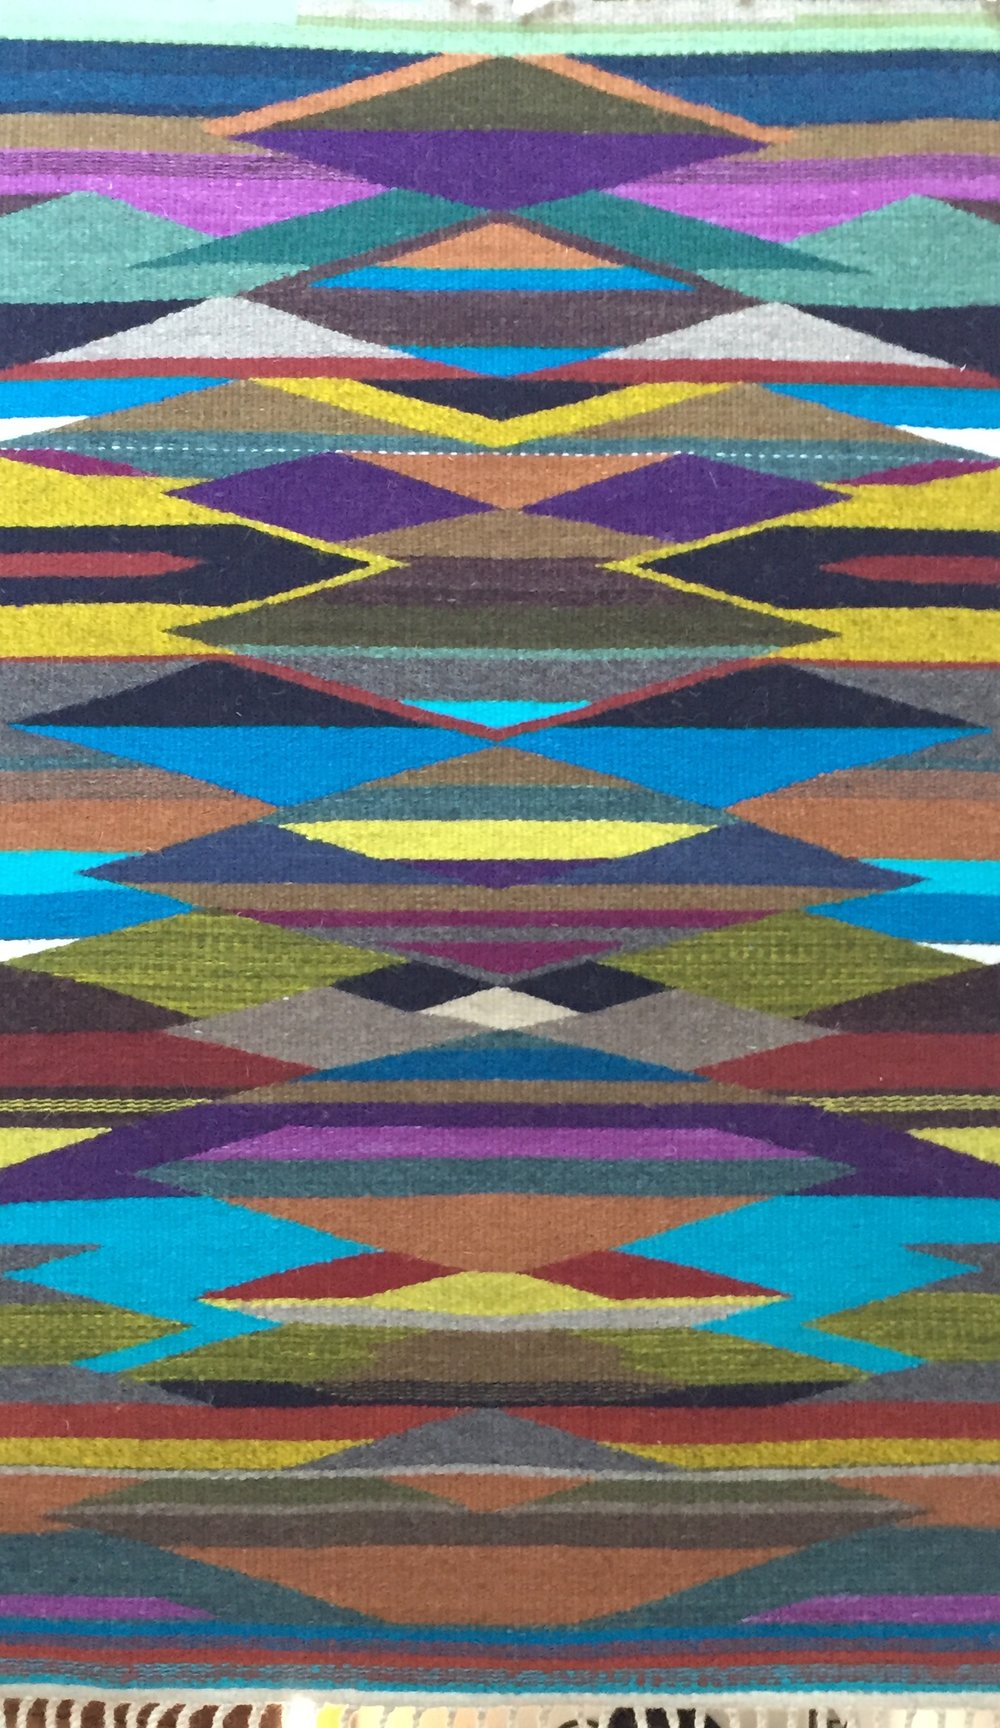 Rio Grande style rug by Dayna Fisk-Williams